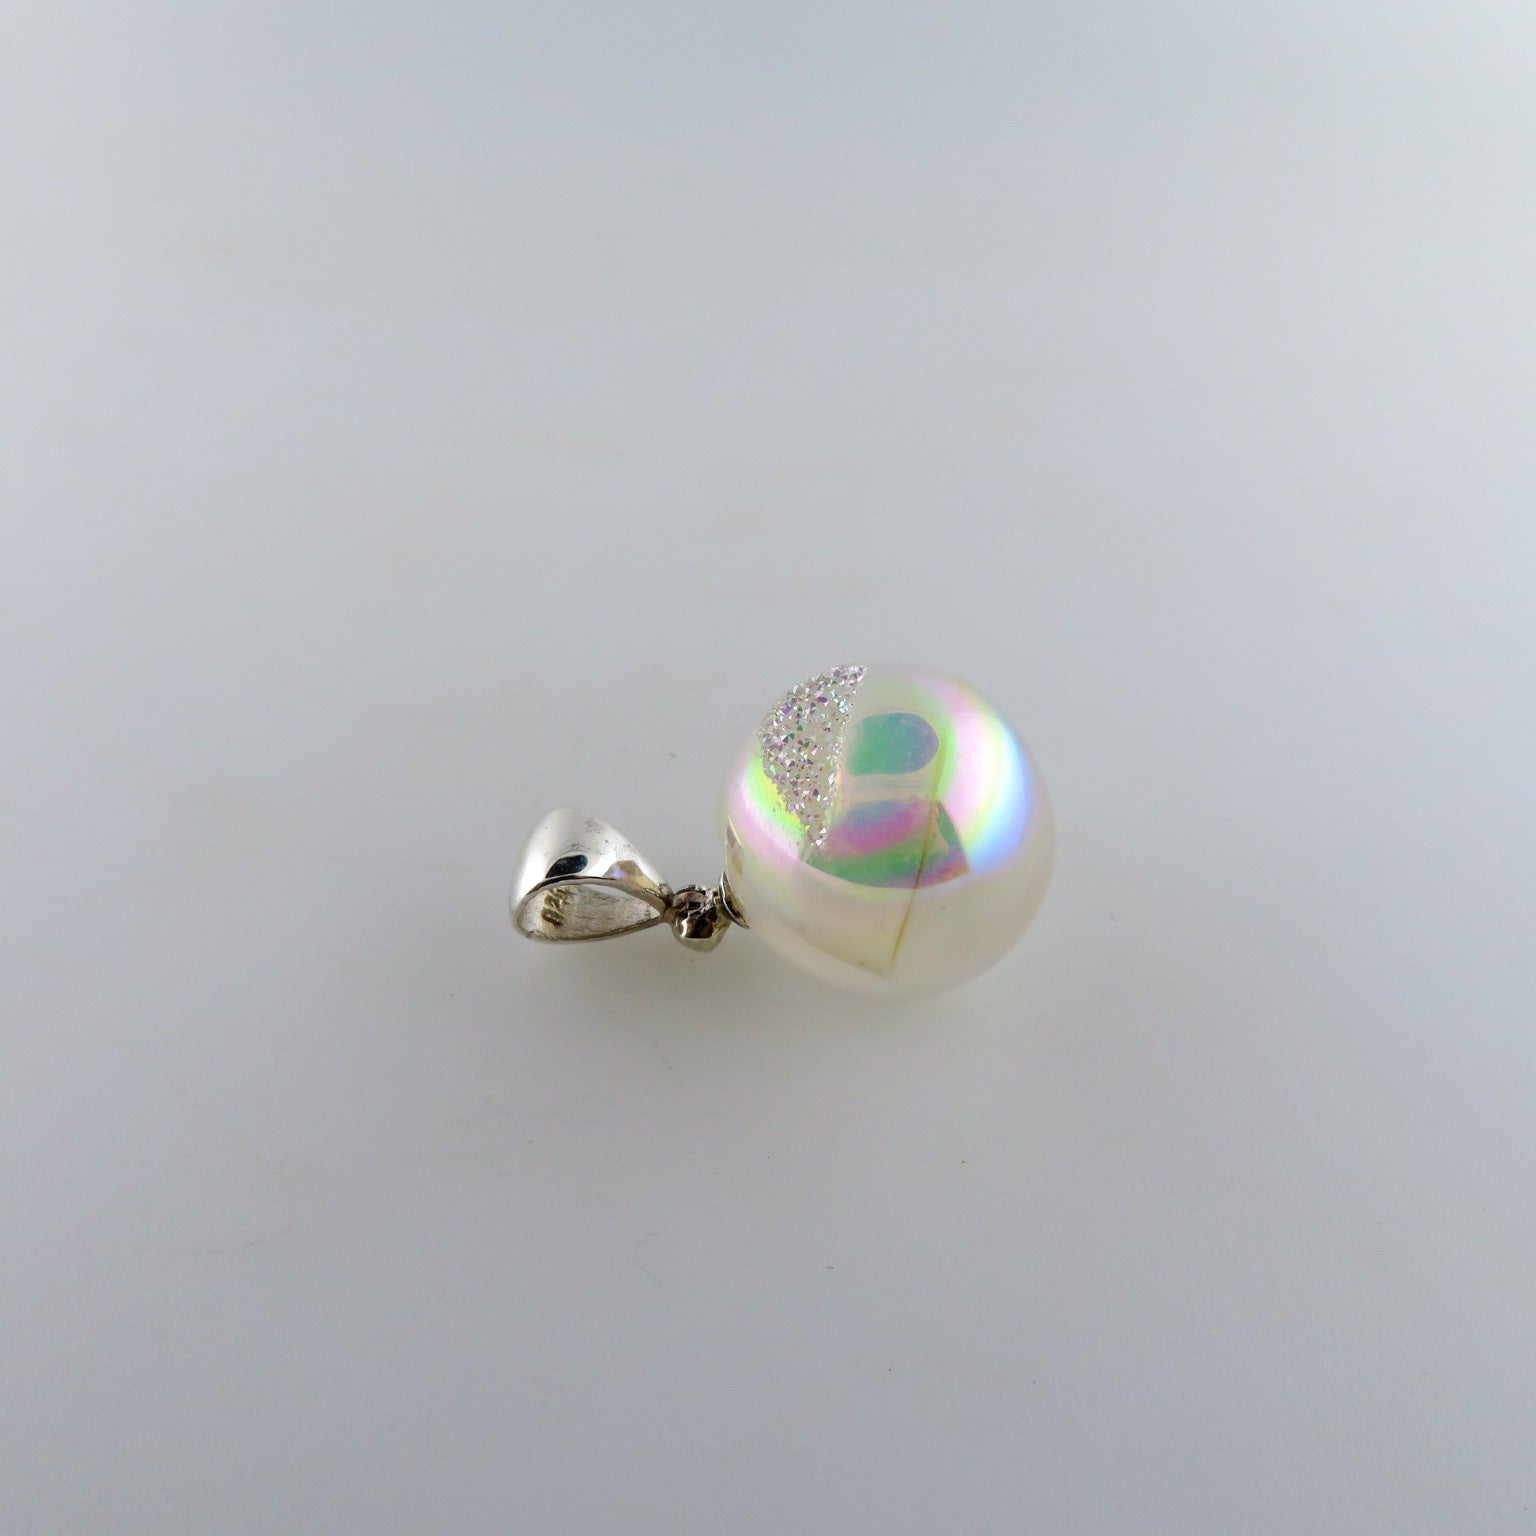 Drusy Quartz Sphere Pendant with Sterling Silver